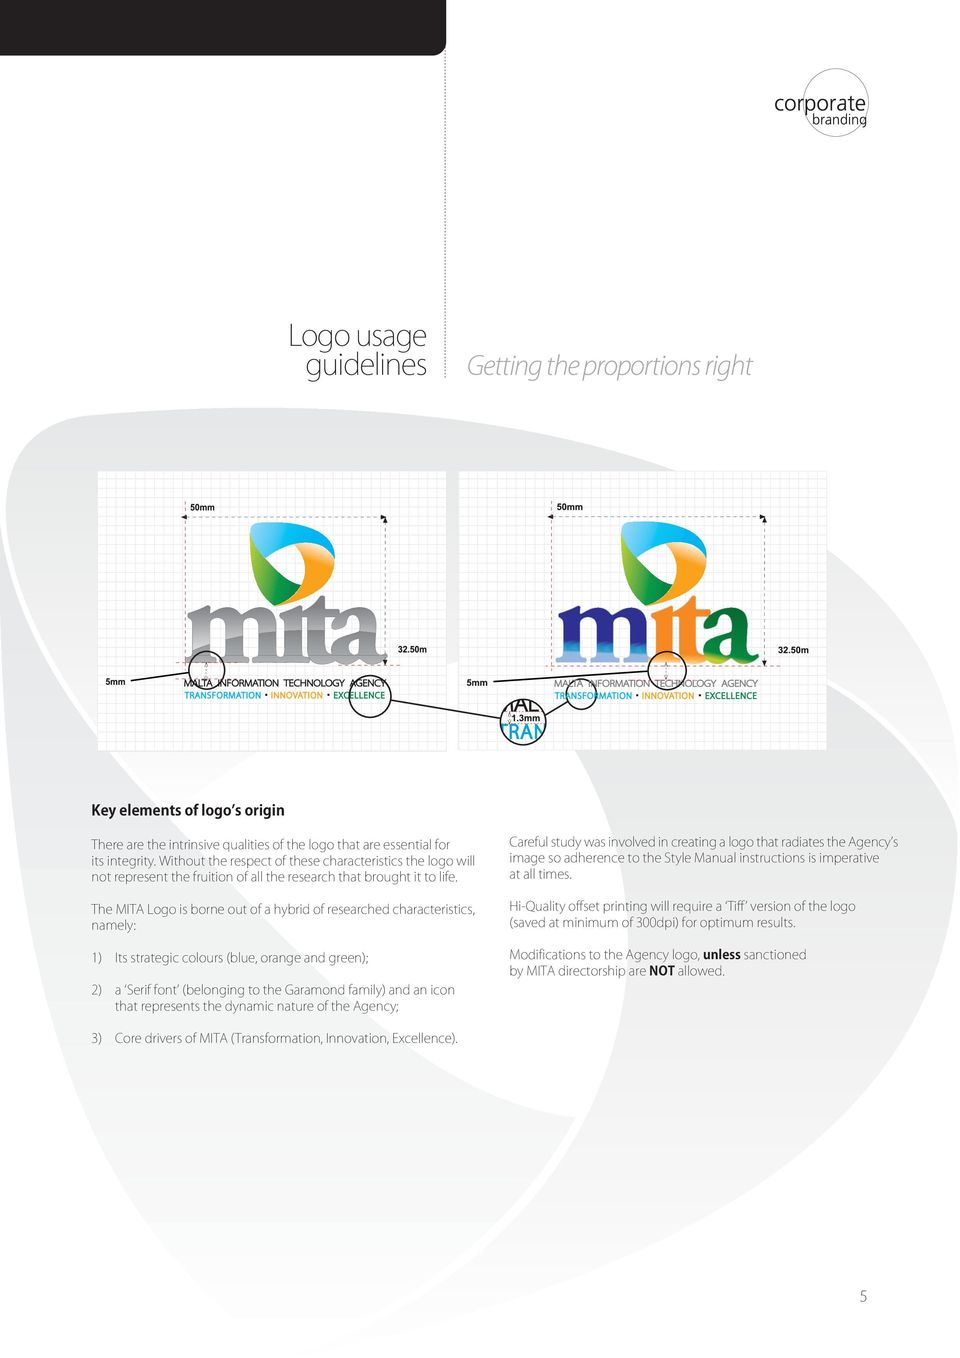 The MITA Logo is borne out of a hybrid of researched characteristics, namely: 1) Its strategic colours (blue, orange and green); 2) a Serif font (belonging to the Garamond family) and an icon that